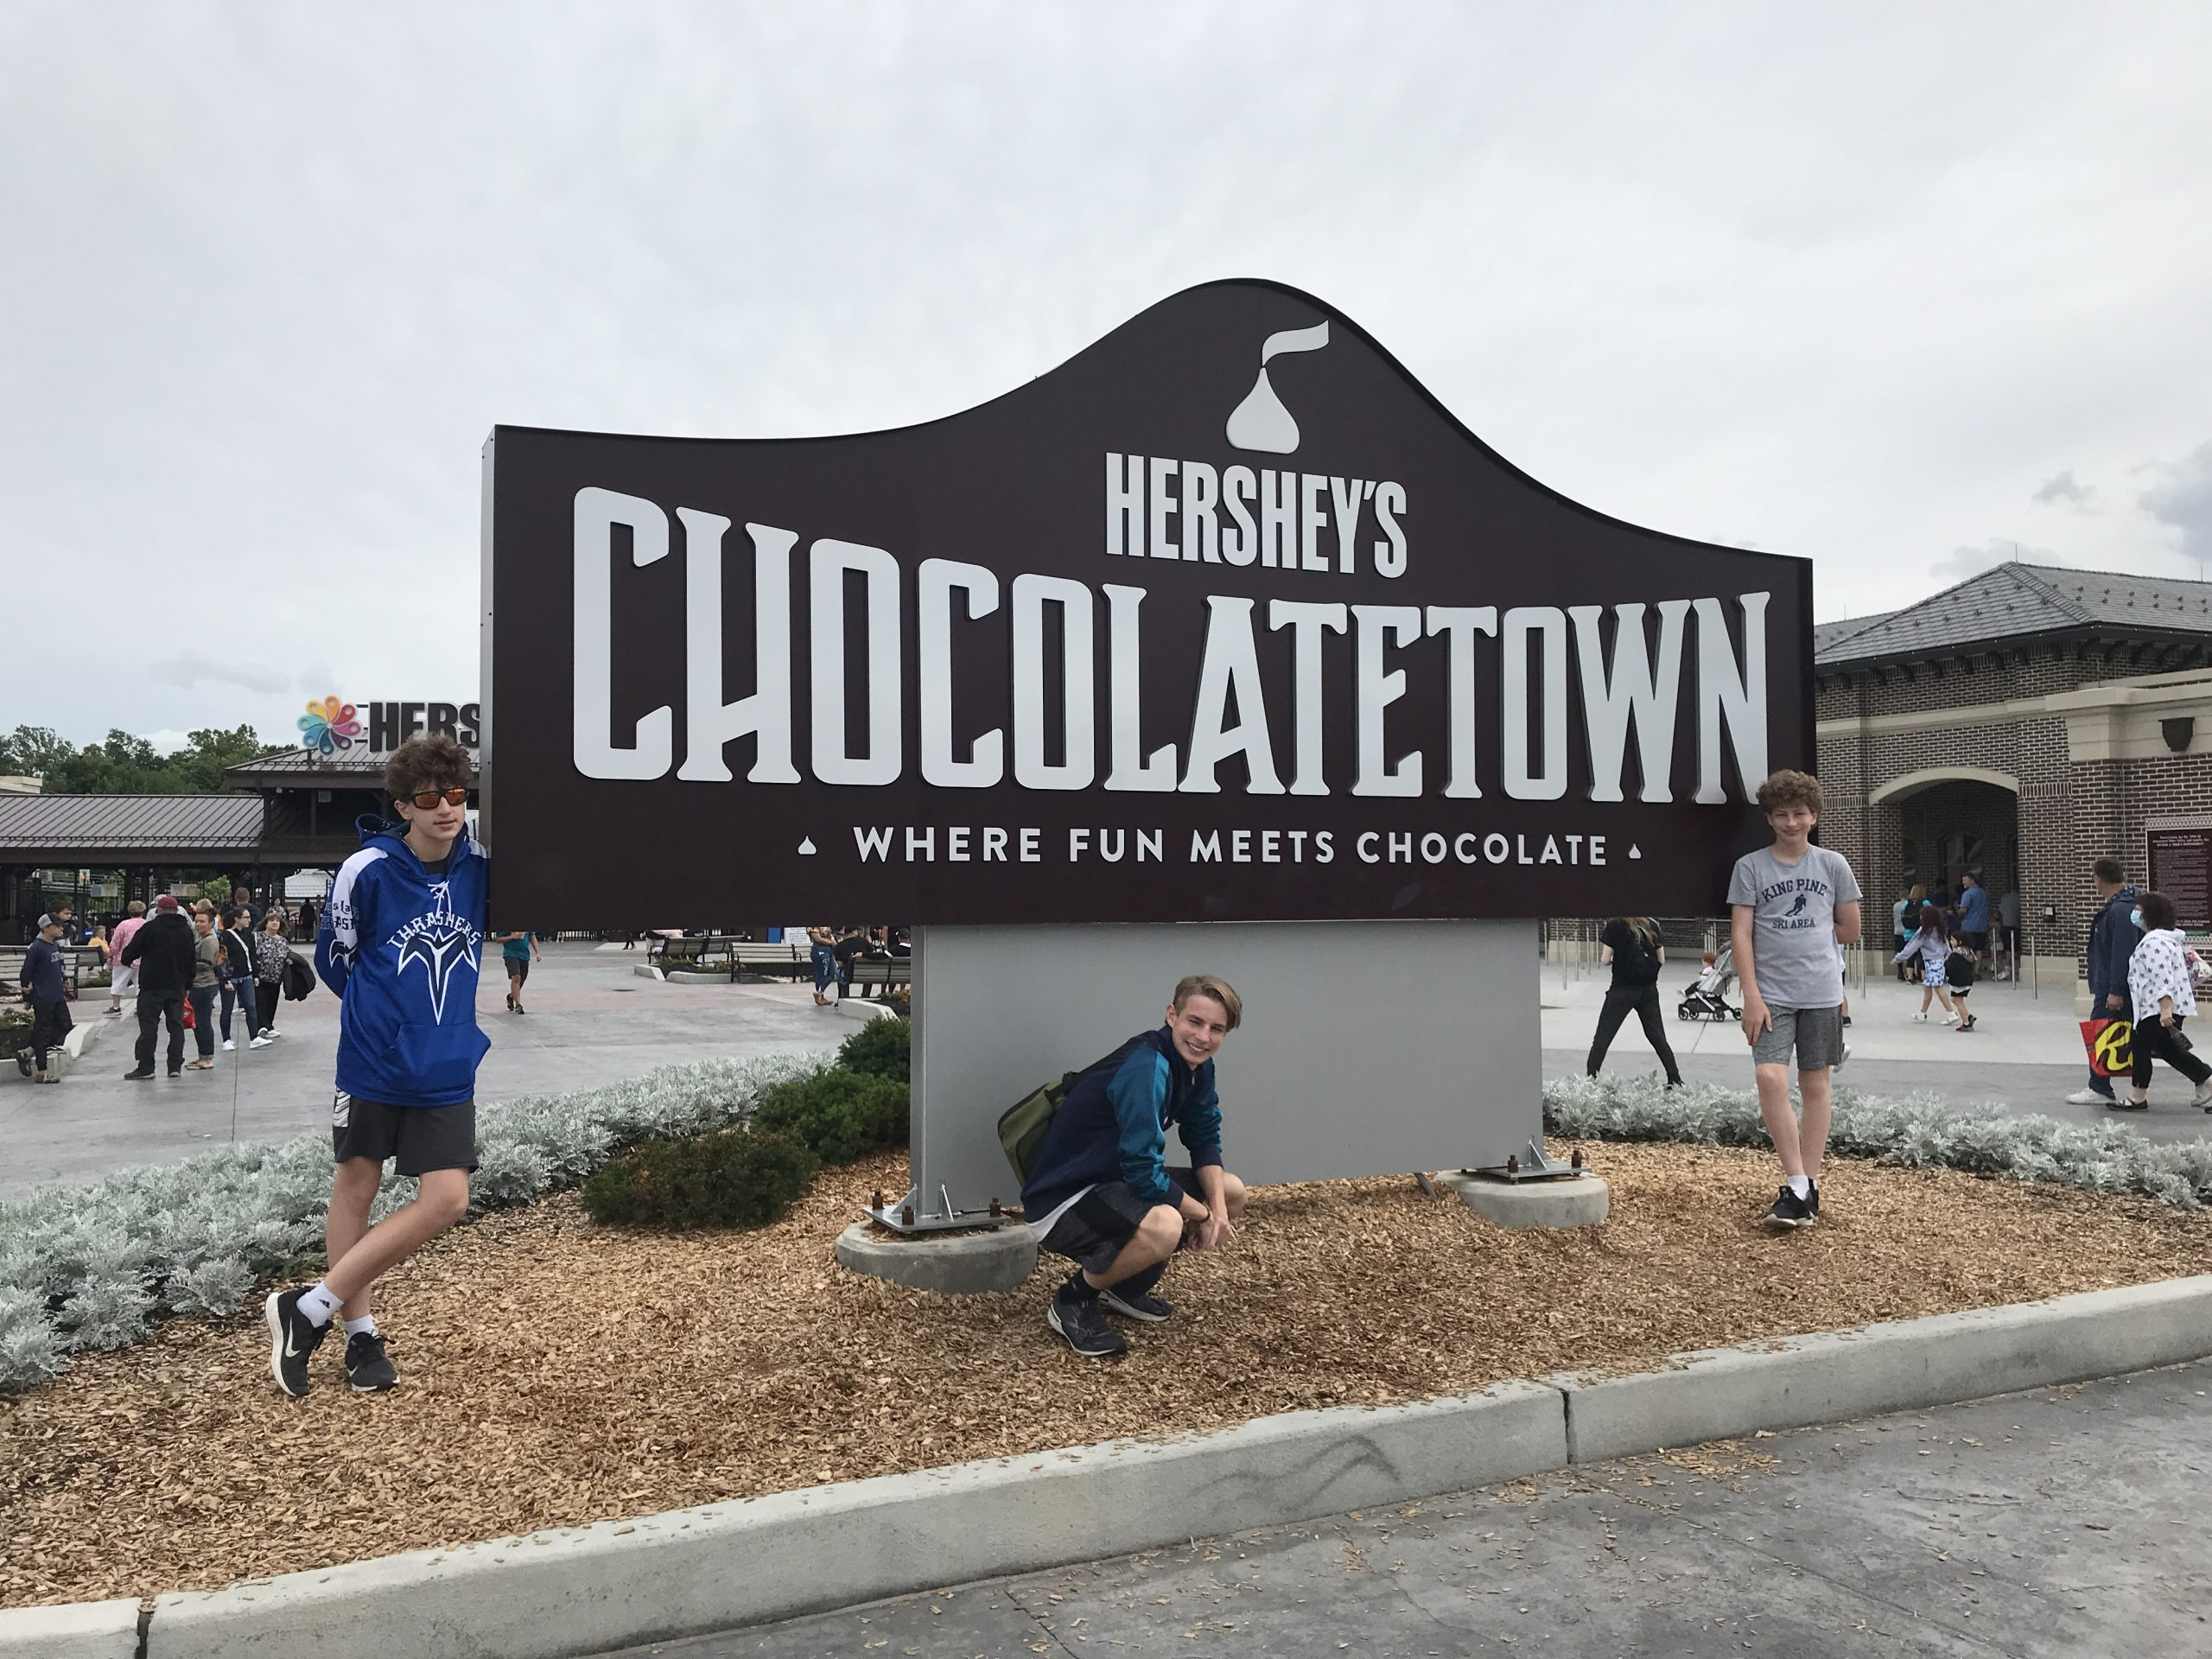 family picture in front of Hershey's Chocolatetown sign